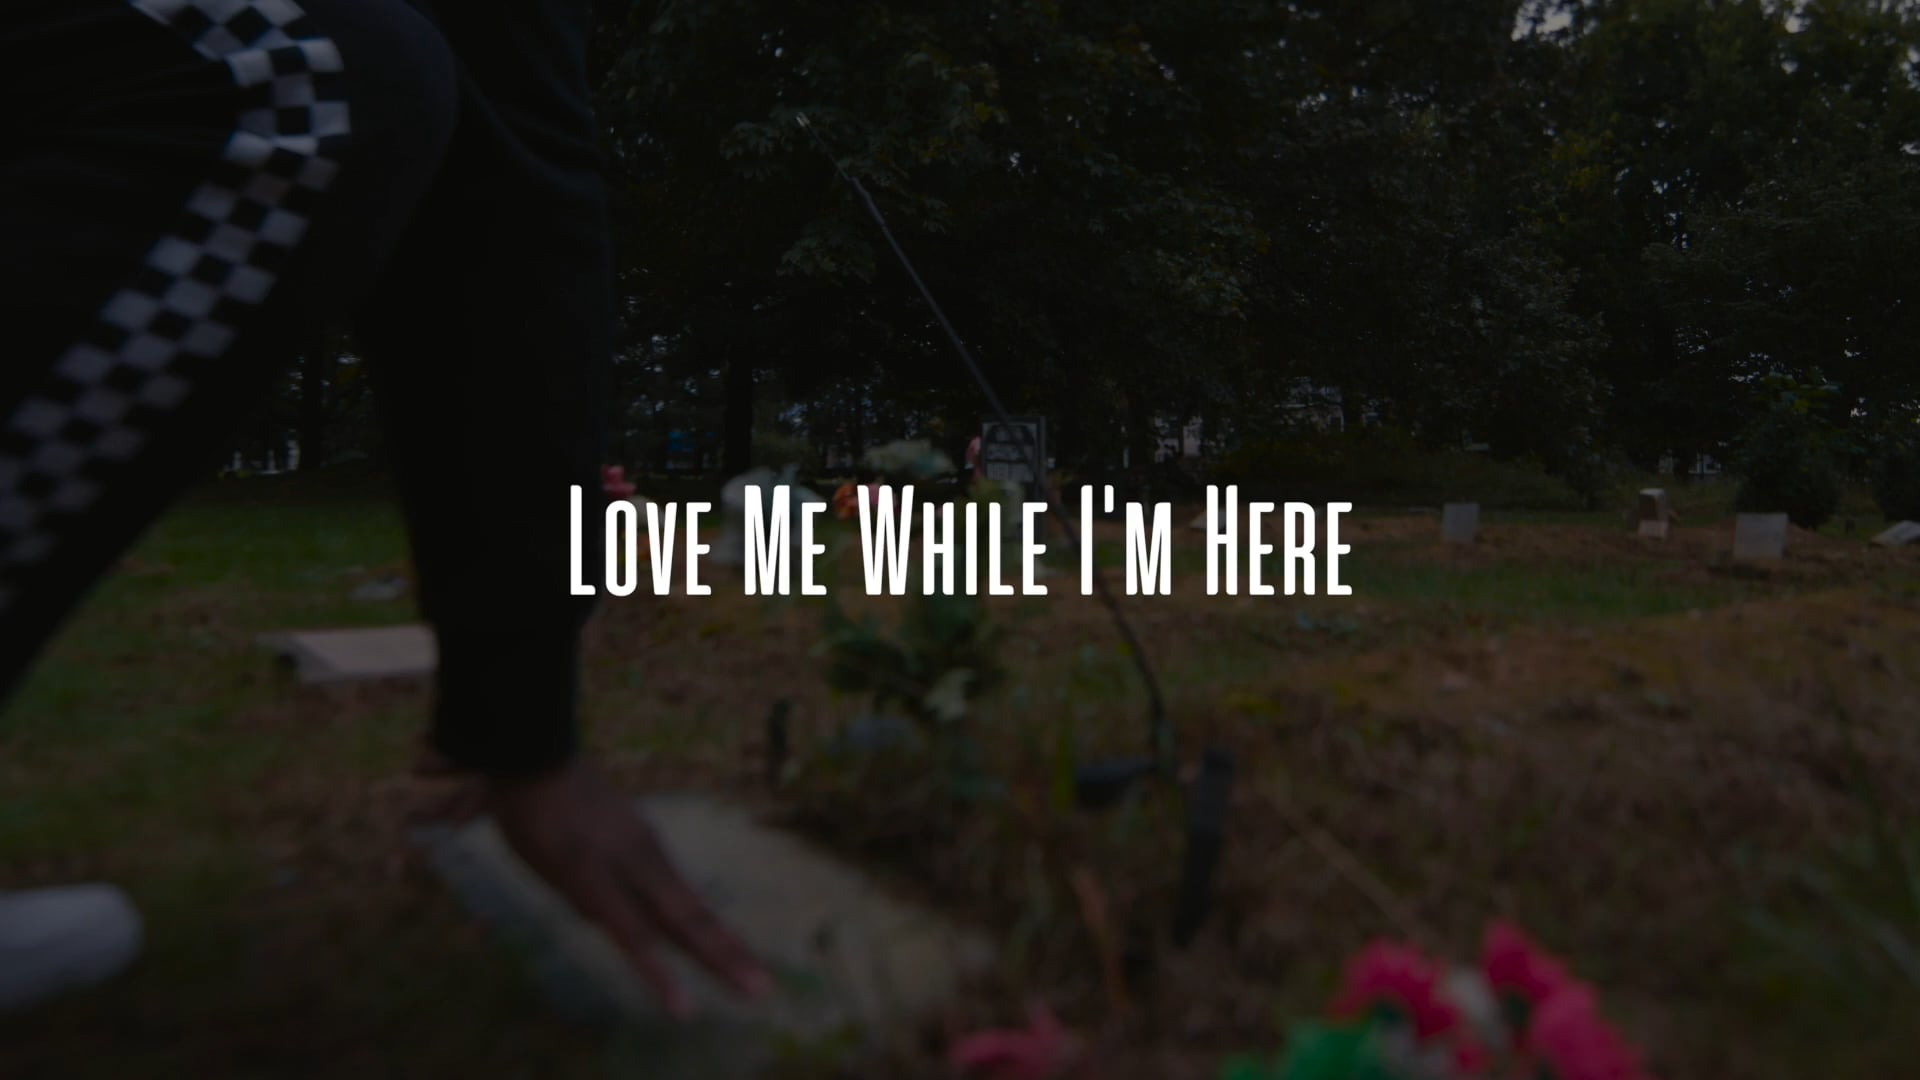 Bugsy - Love Me While I'm Here